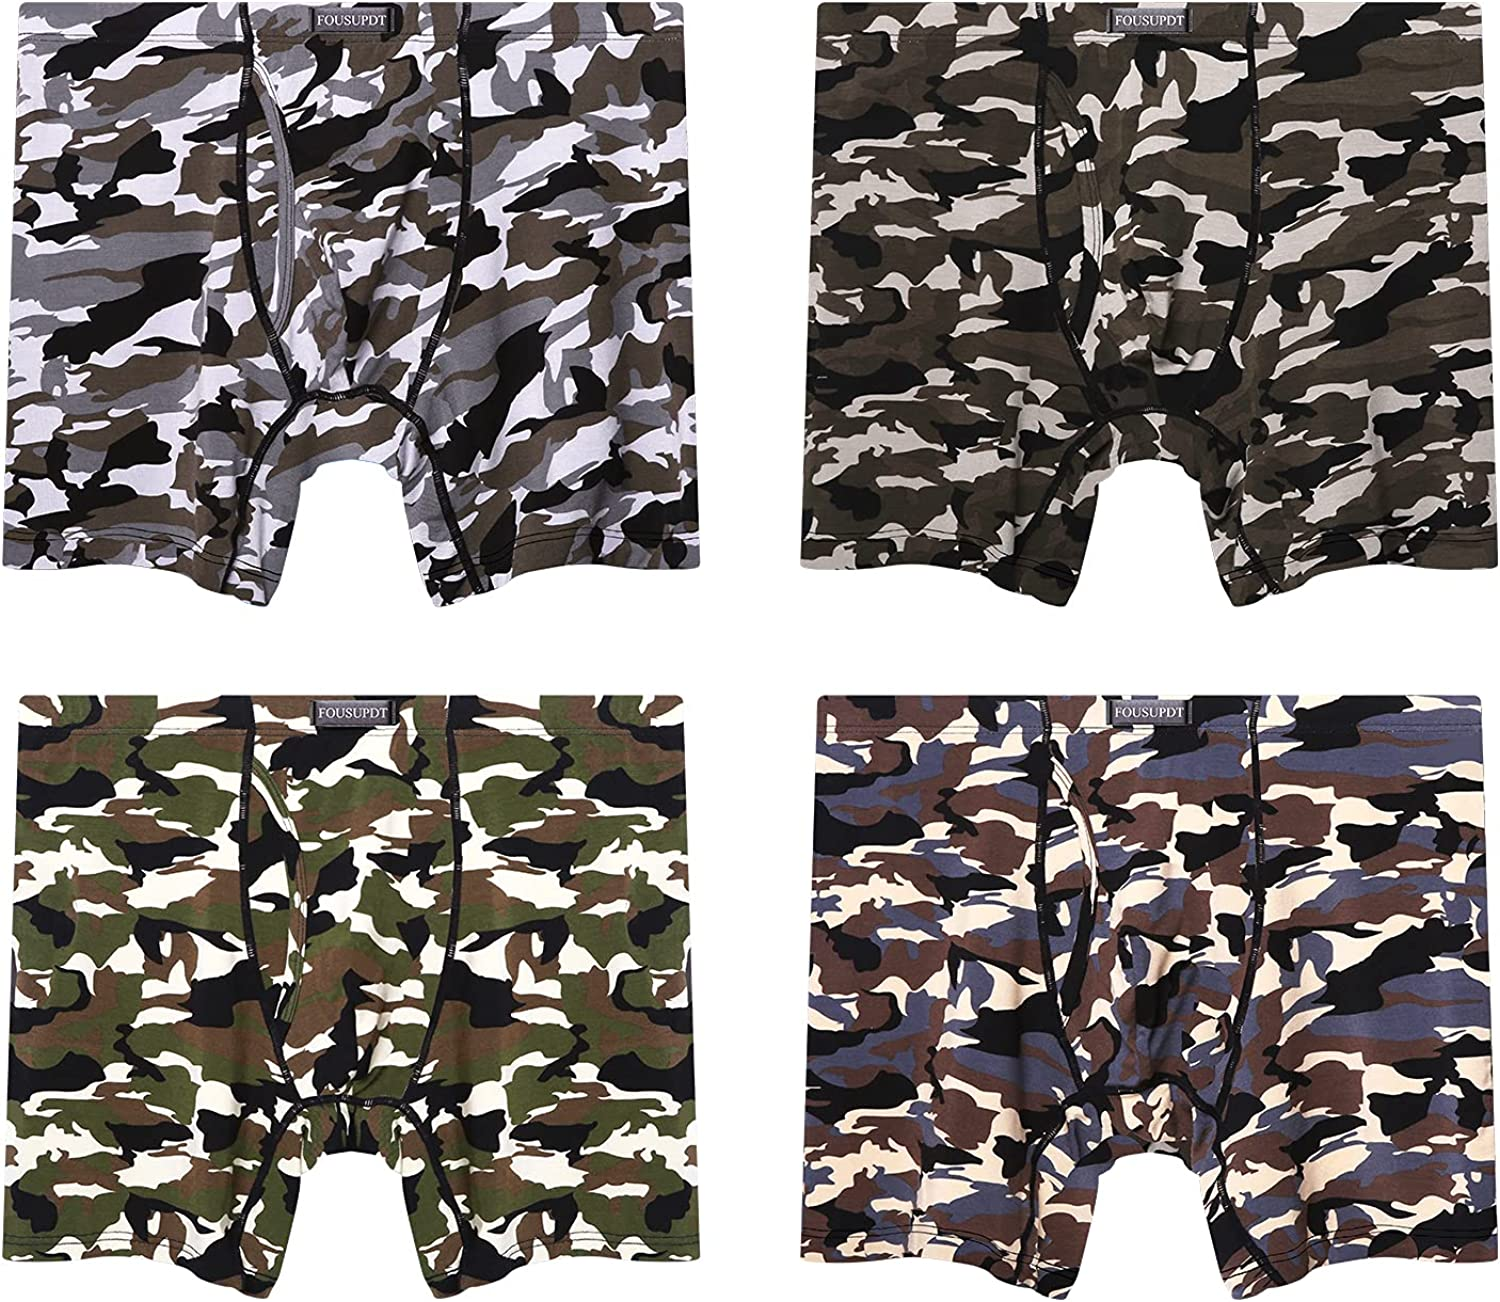 FOUSUPDT Men's 4 Pack Long Leg Underwear Boxer Briefs Open Fly Front with Pouch